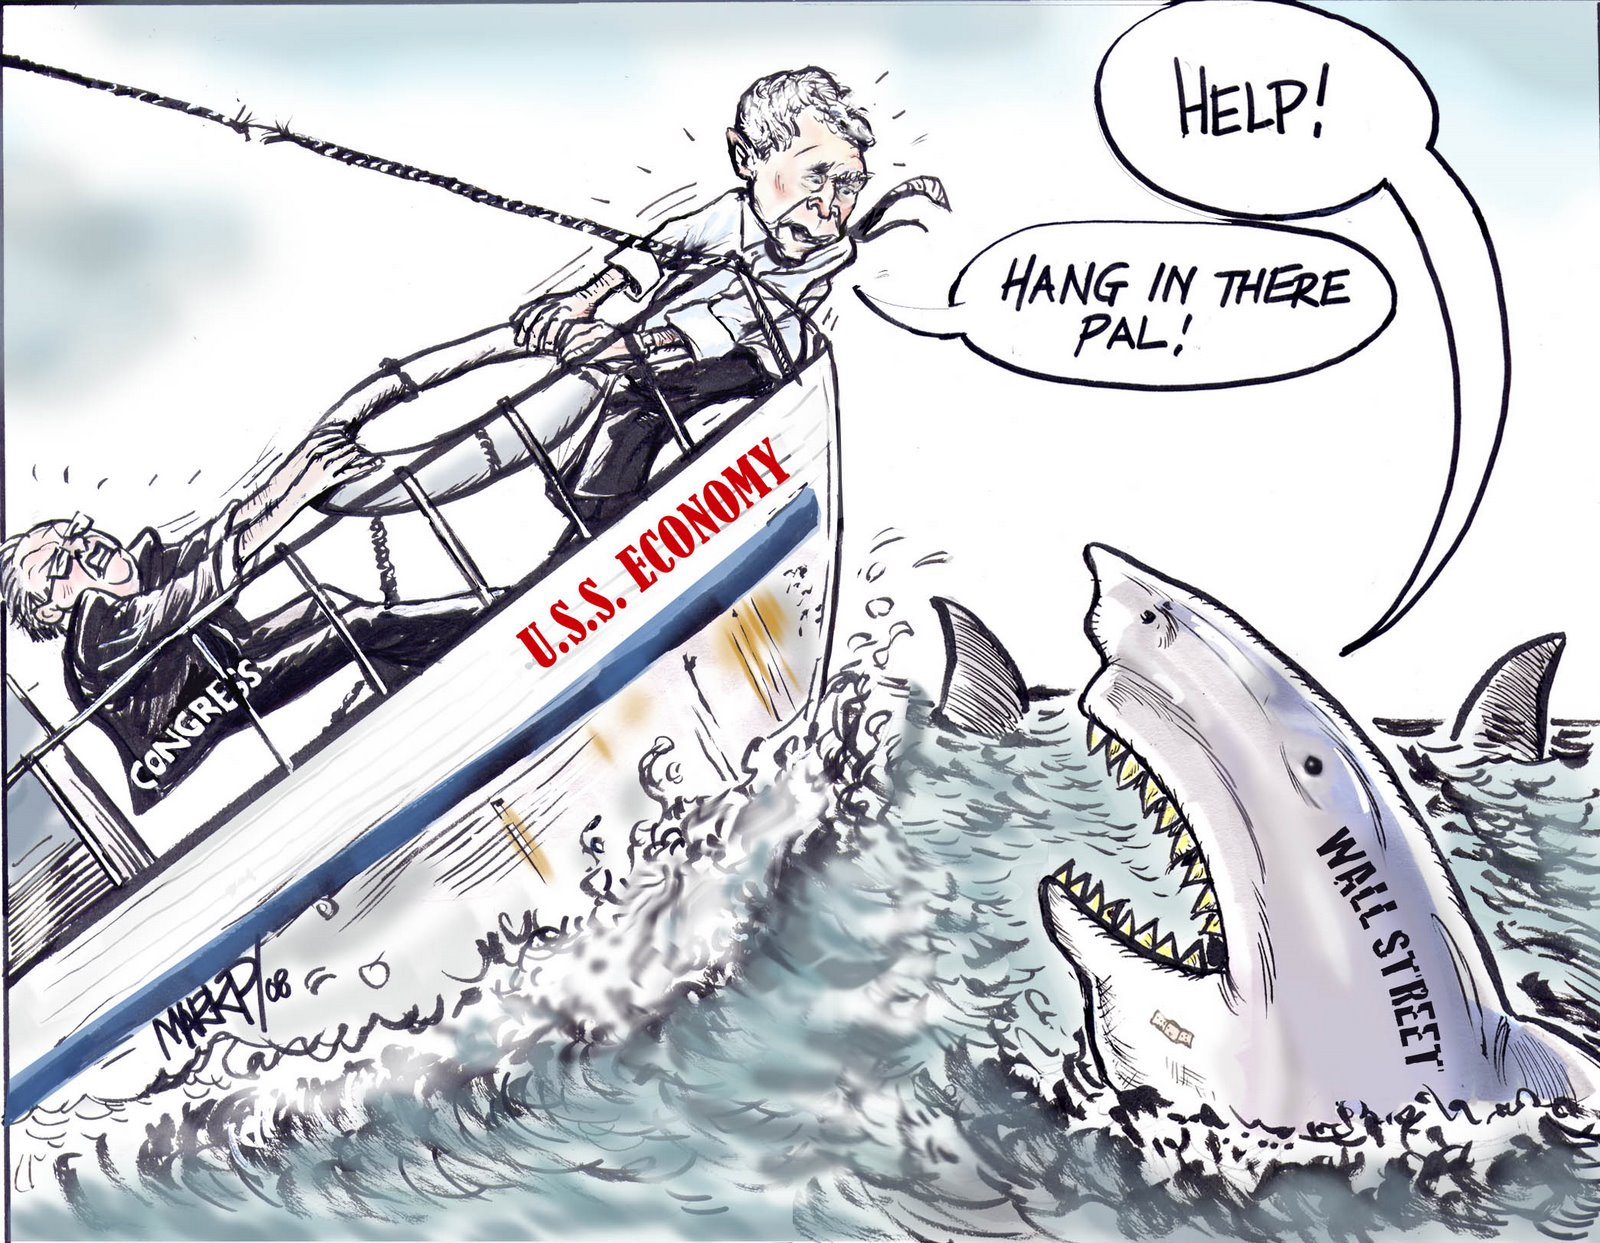 Bailing out the sharks as US economy collapses by Mark Perrault